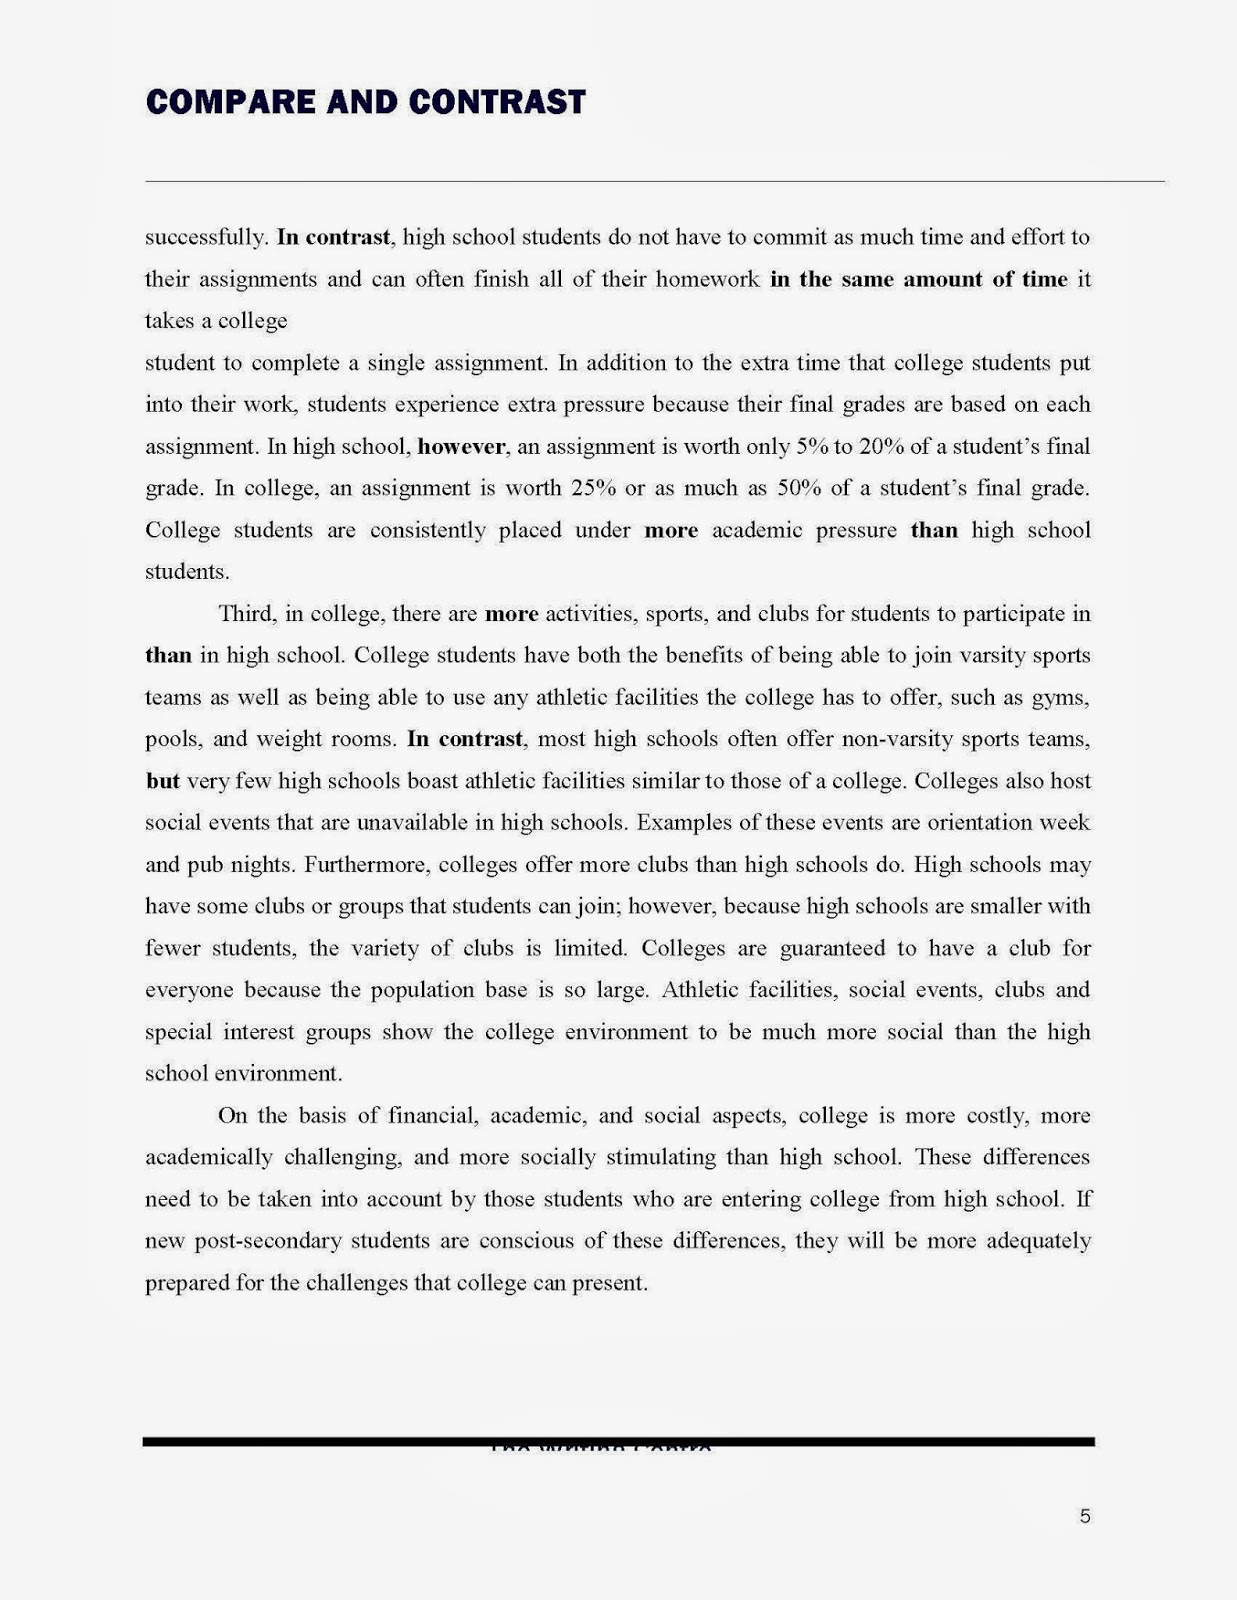 the benefits of learning english essay essay on high school  college essay thesis essay thesis statement example high school vs college essay compare and